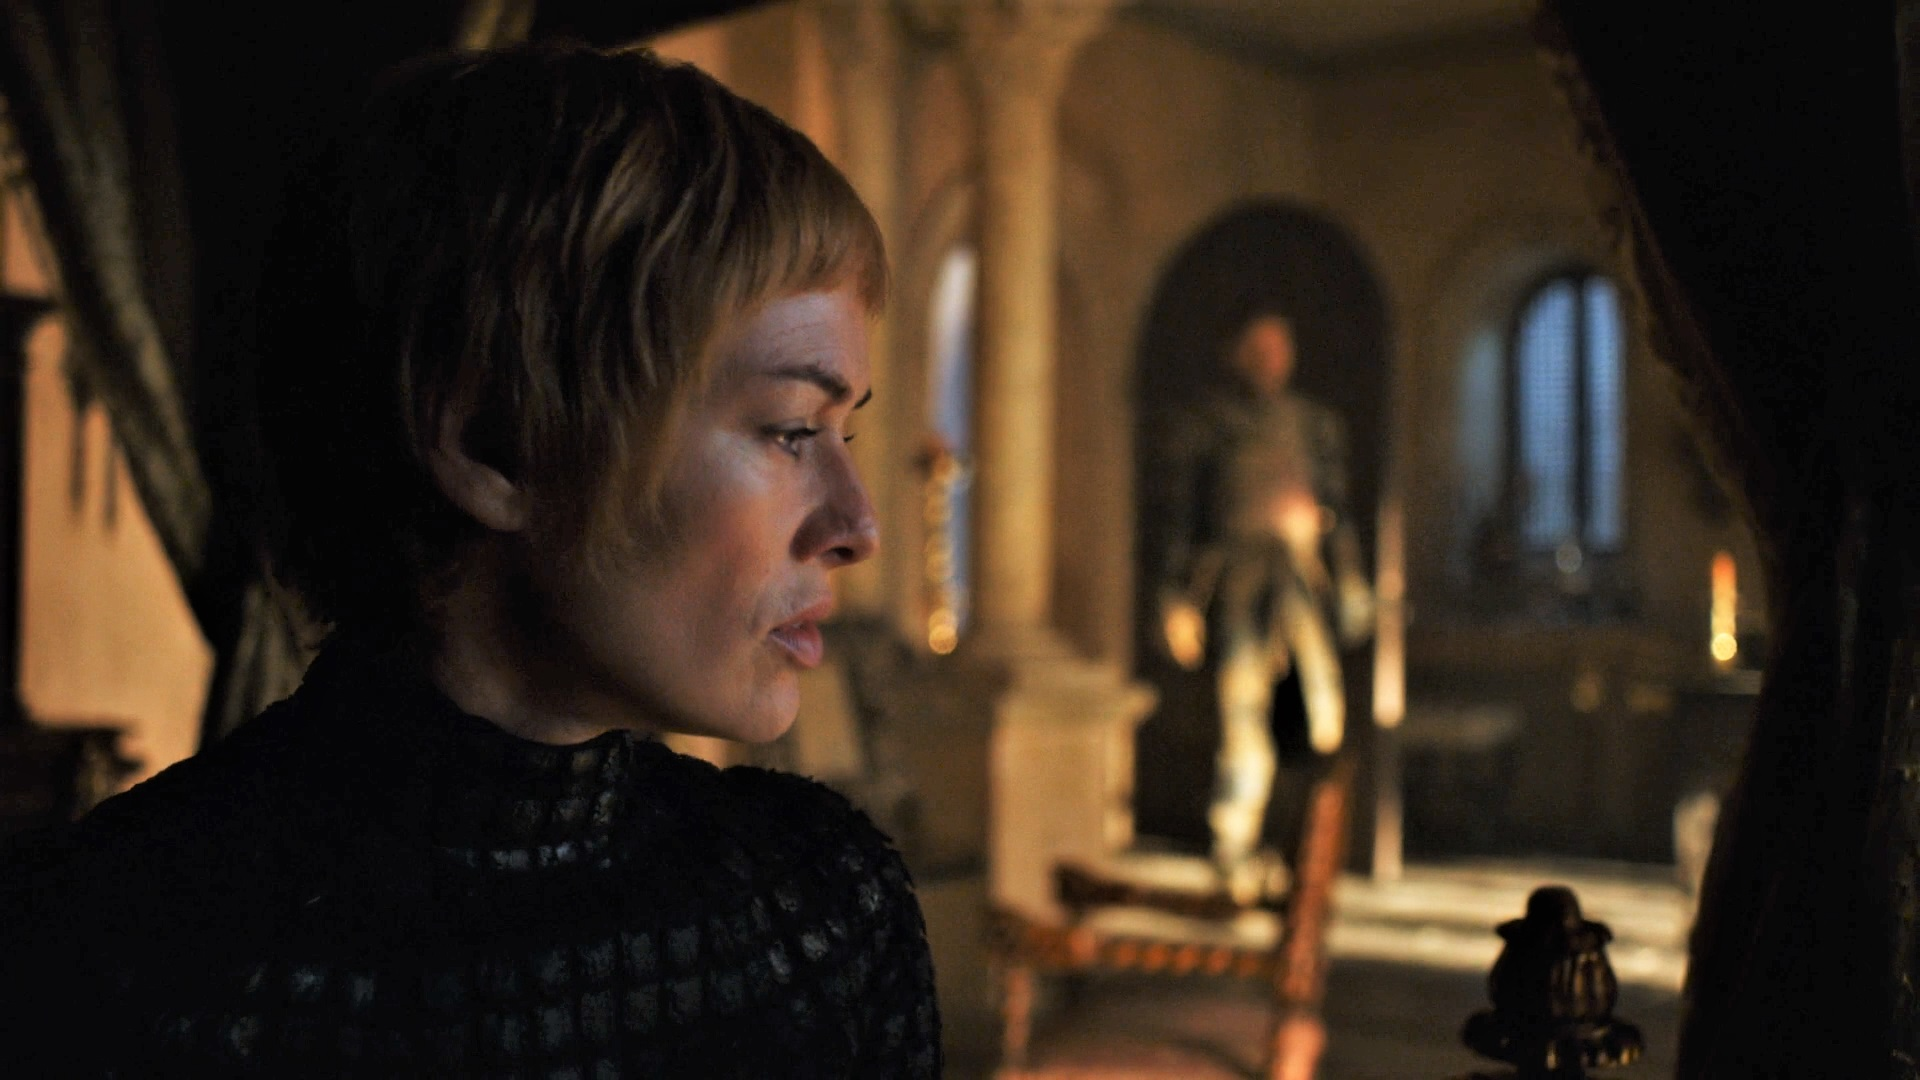 Lena Heady as Cersei Lannister.